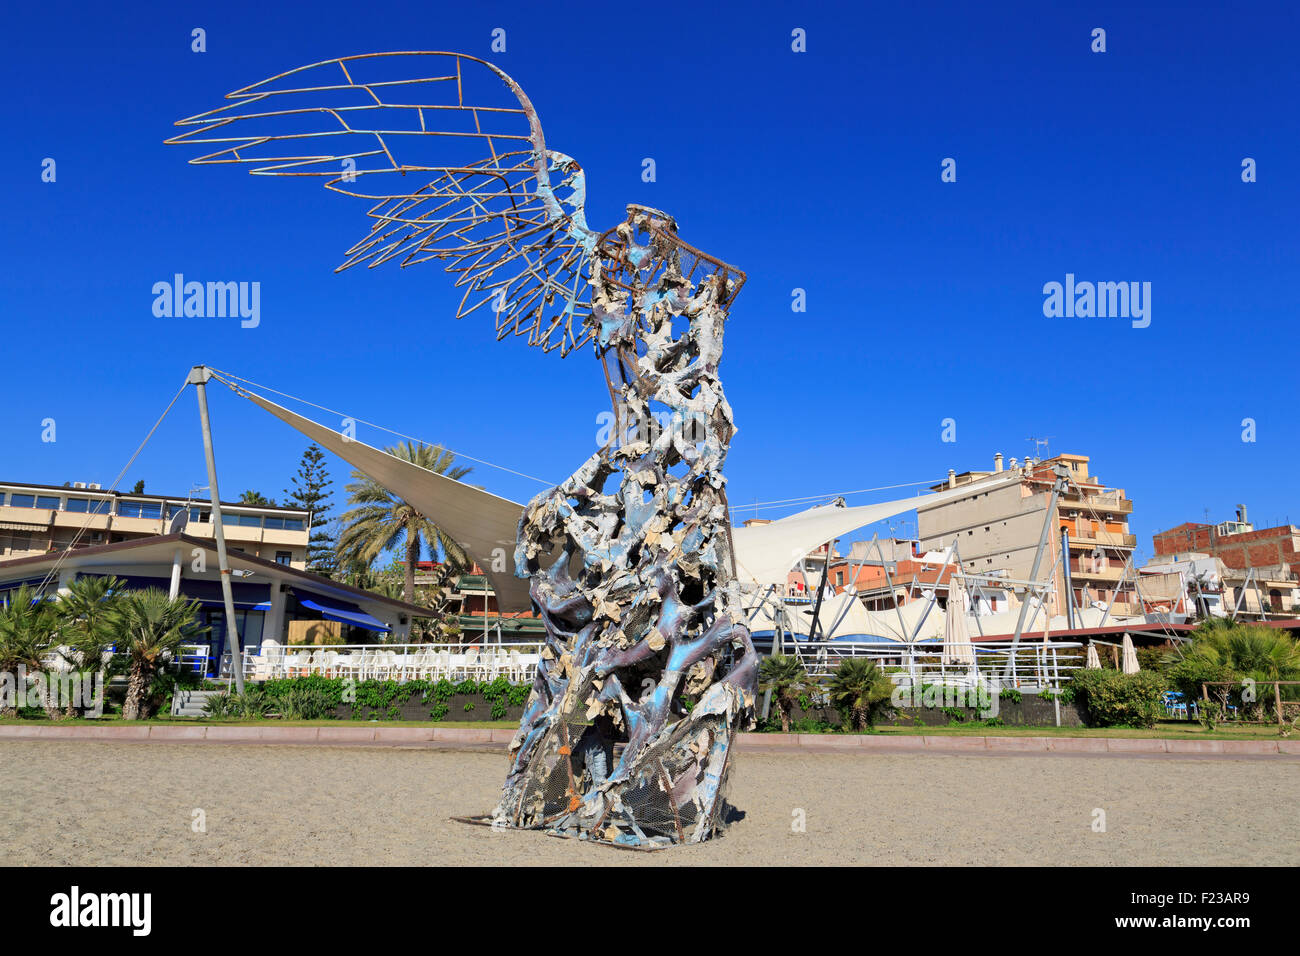 Nike sculpture on beach by Camelo Mendola, Giardini Naxos City, Sicily Island, Italy, Europe - Stock Image